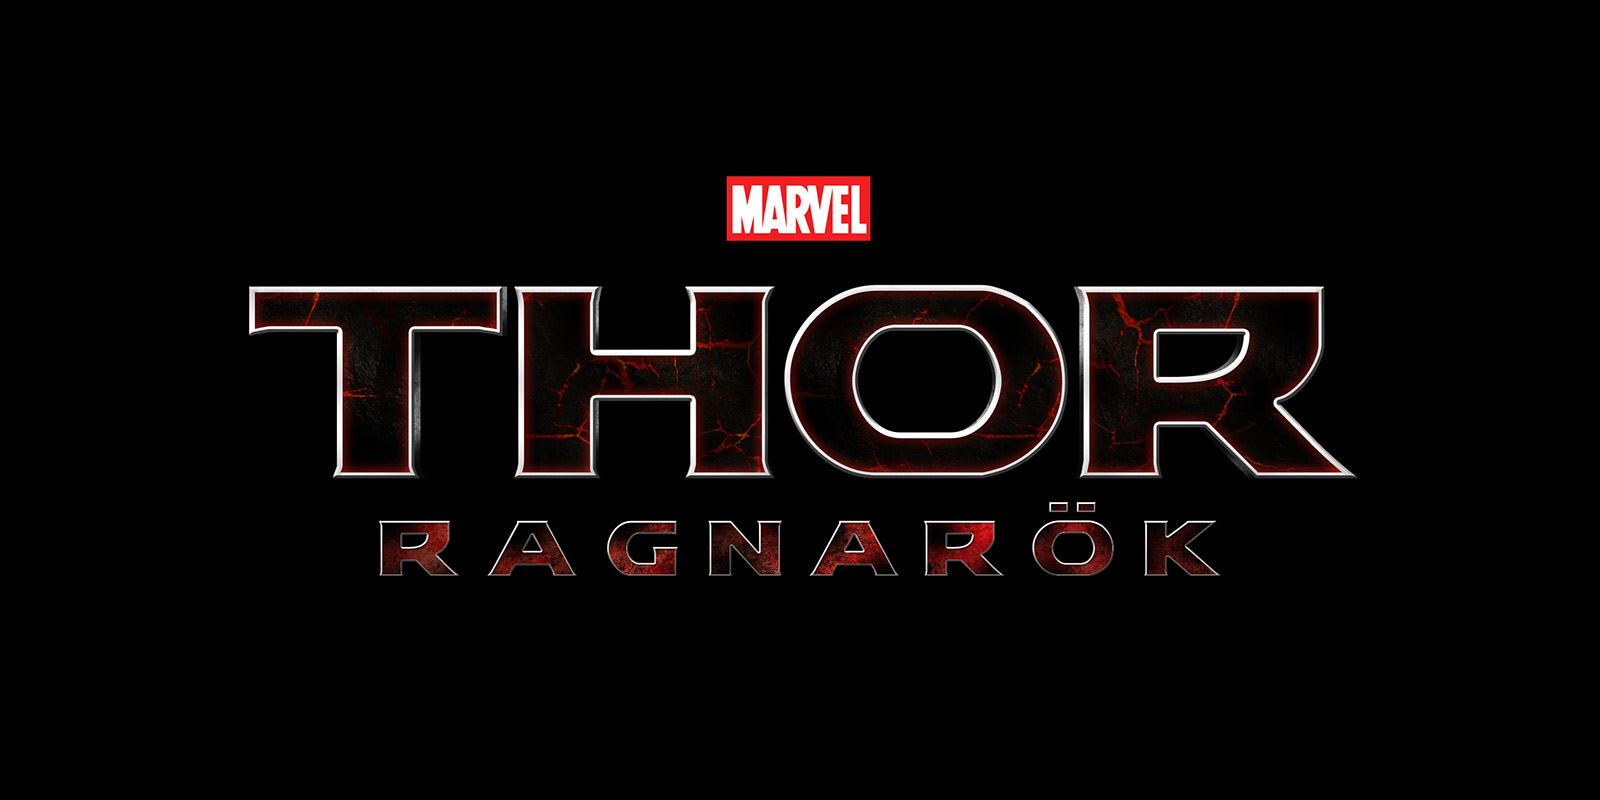 https://cinemaplanet.pt/wp-content/uploads/2017/01/Thor-Ragnarok-Fan-Logo.jpg